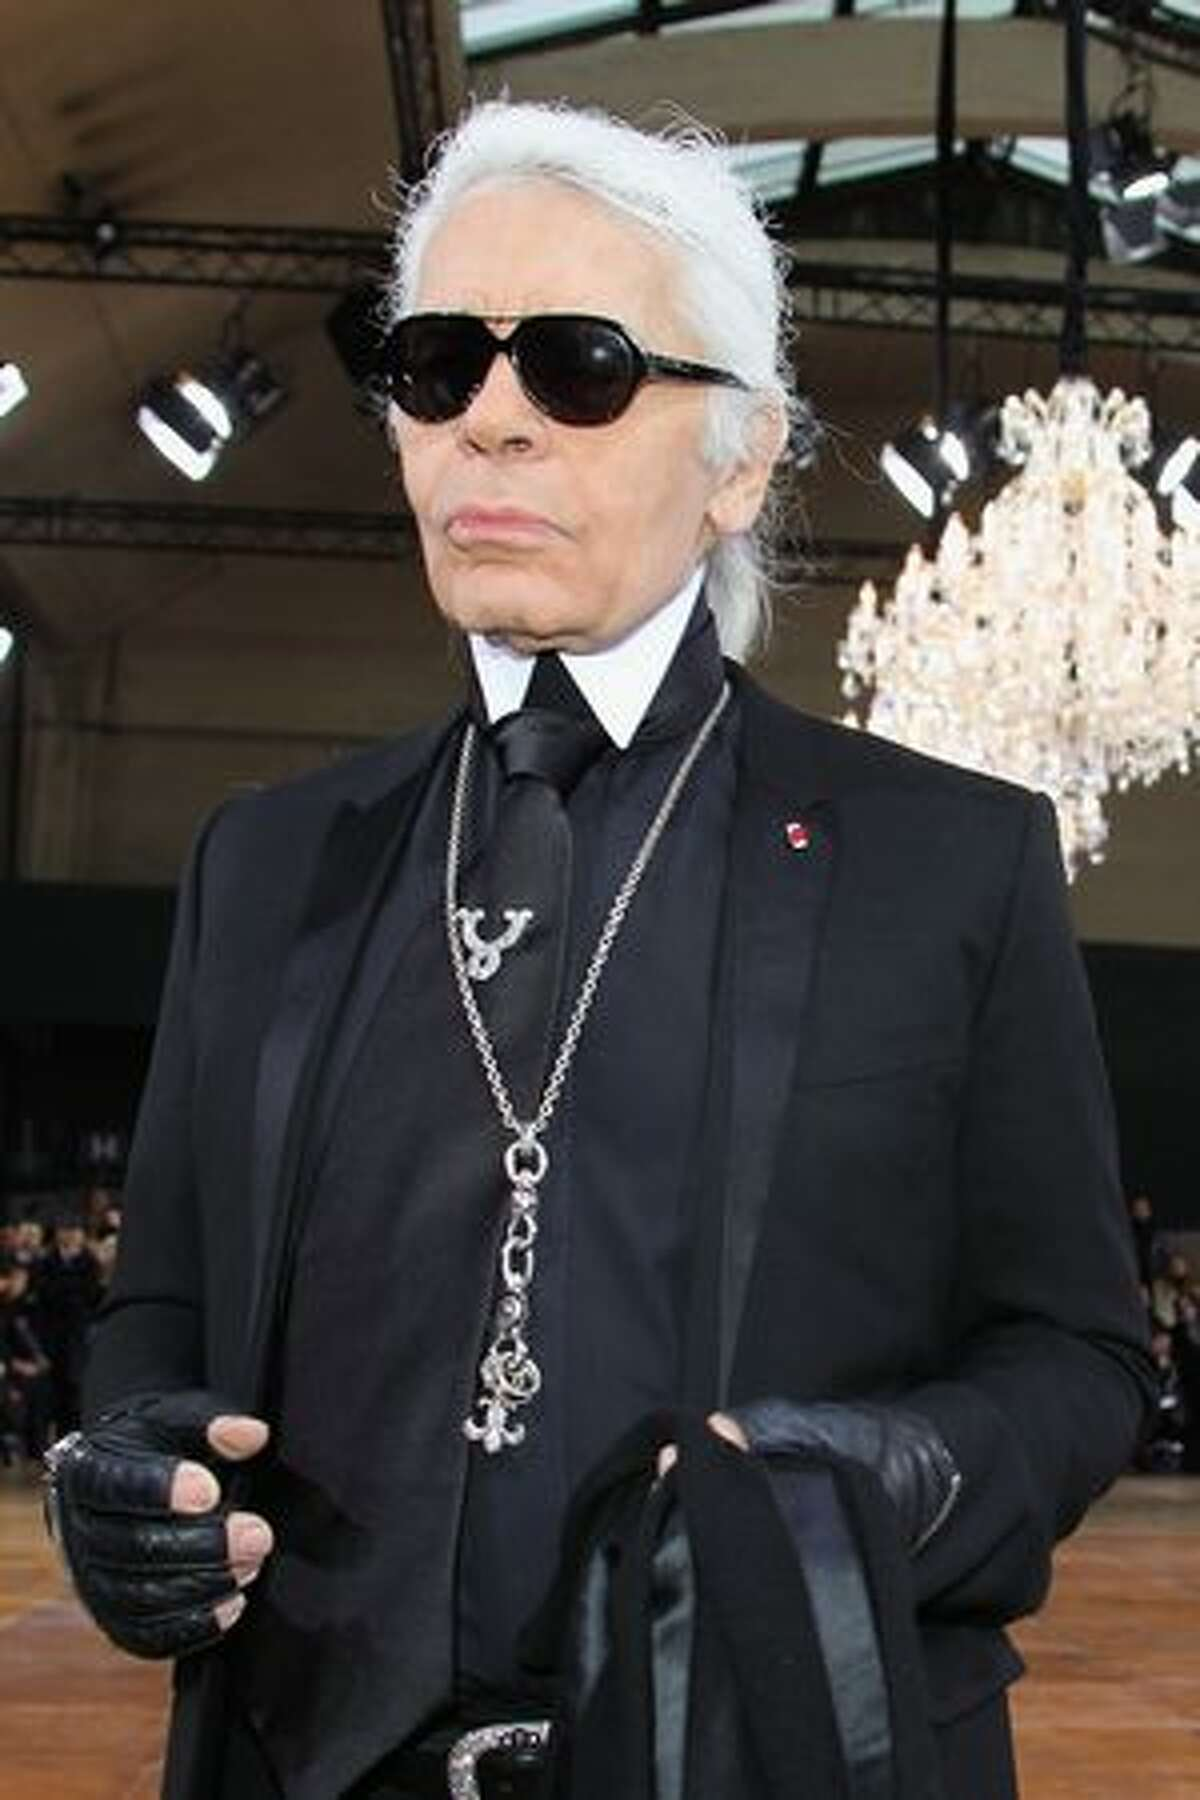 Karl Lagerfeld attends the Dior Homme fashion show as part of Paris Menswear Fashion Week Fall/Winter 2011-2012 in Paris, France.